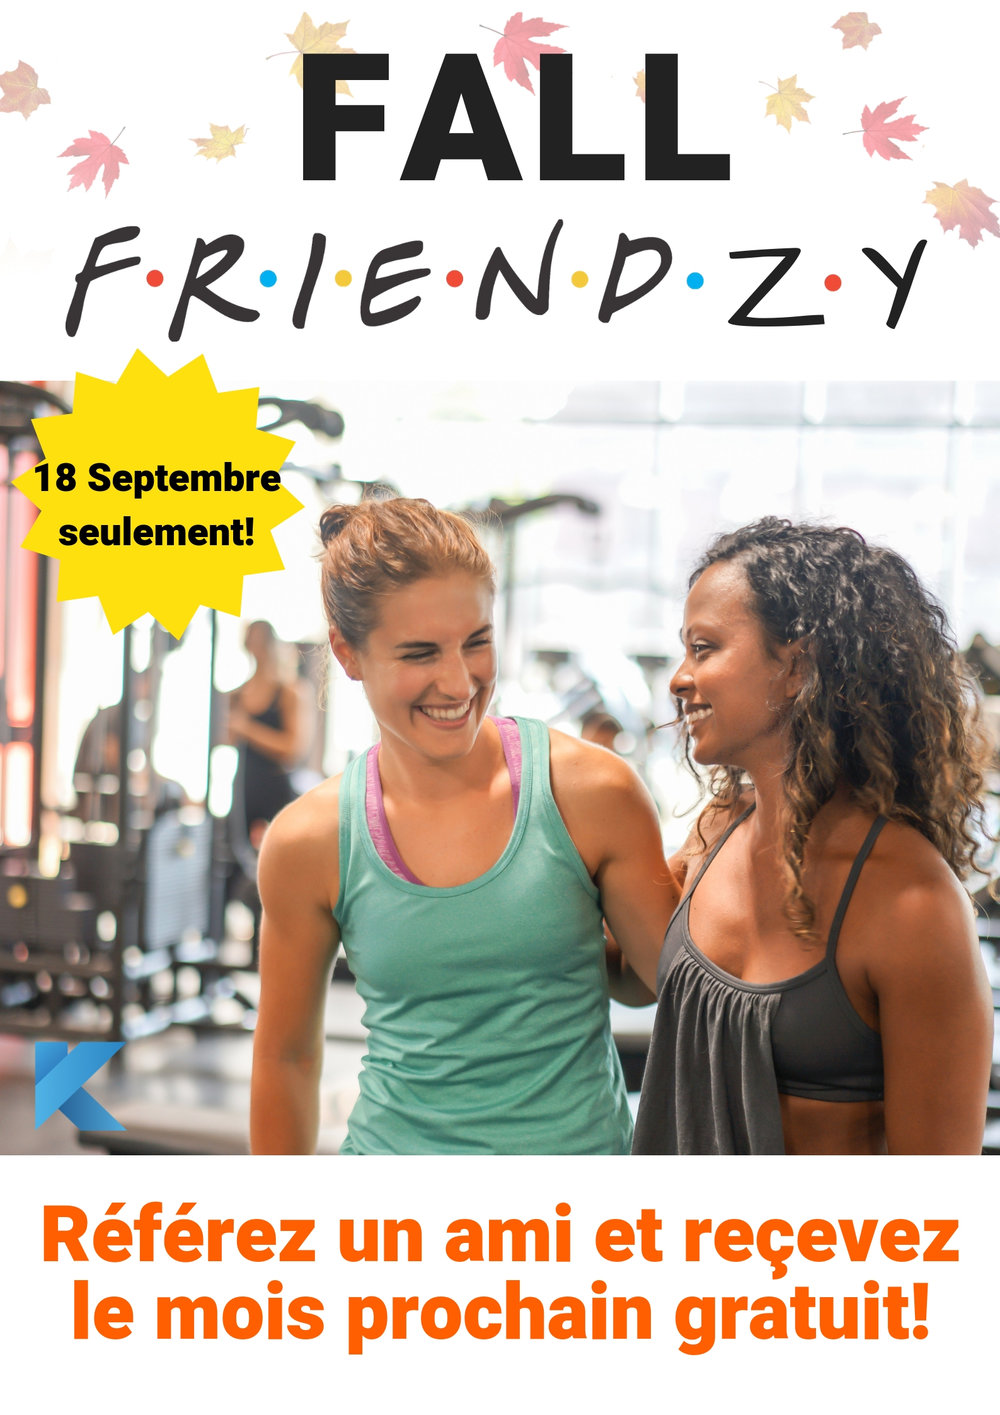 Refer a friend on Tuesday September 18th and get your next month absolutely FREE!!  Refer a friend below!